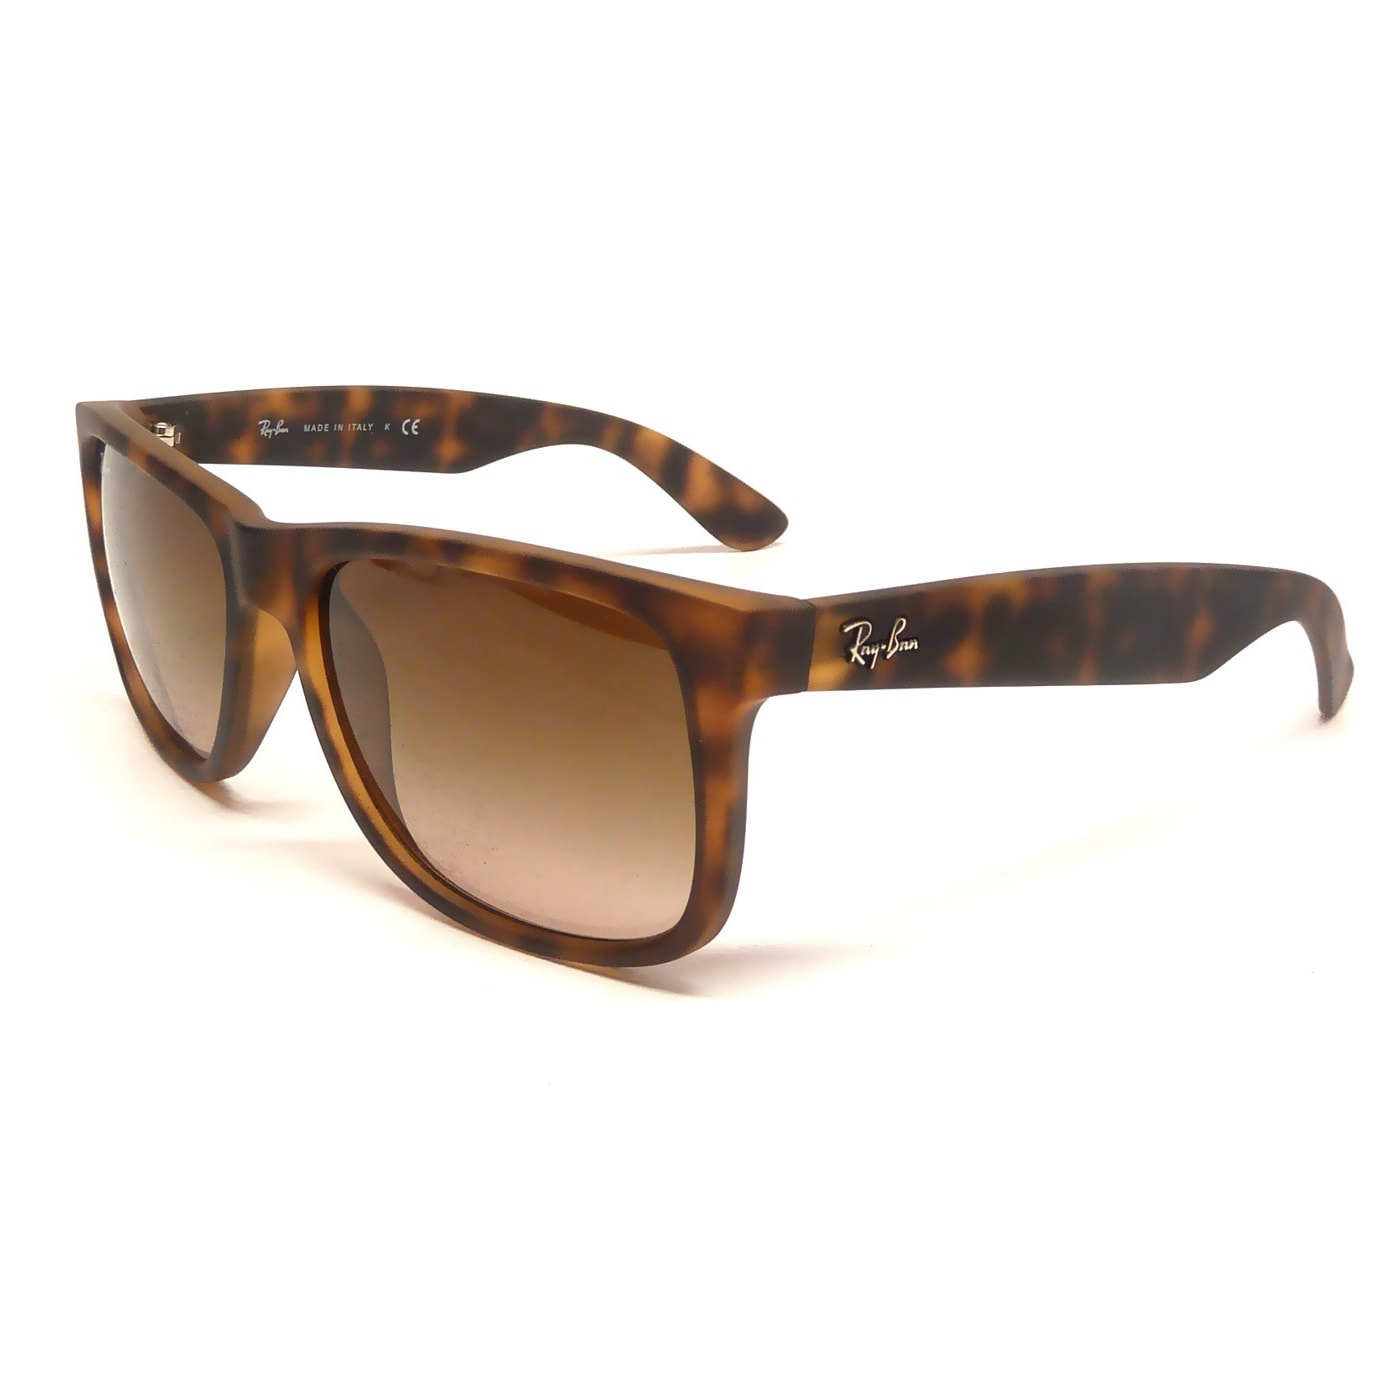 5a21b570c4 Shop Ray-Ban Justin Matte Tortoise Frame Brown Gradient 55mm Wayfarer  Sunglasses - Free Shipping Today - Overstock - 9221980